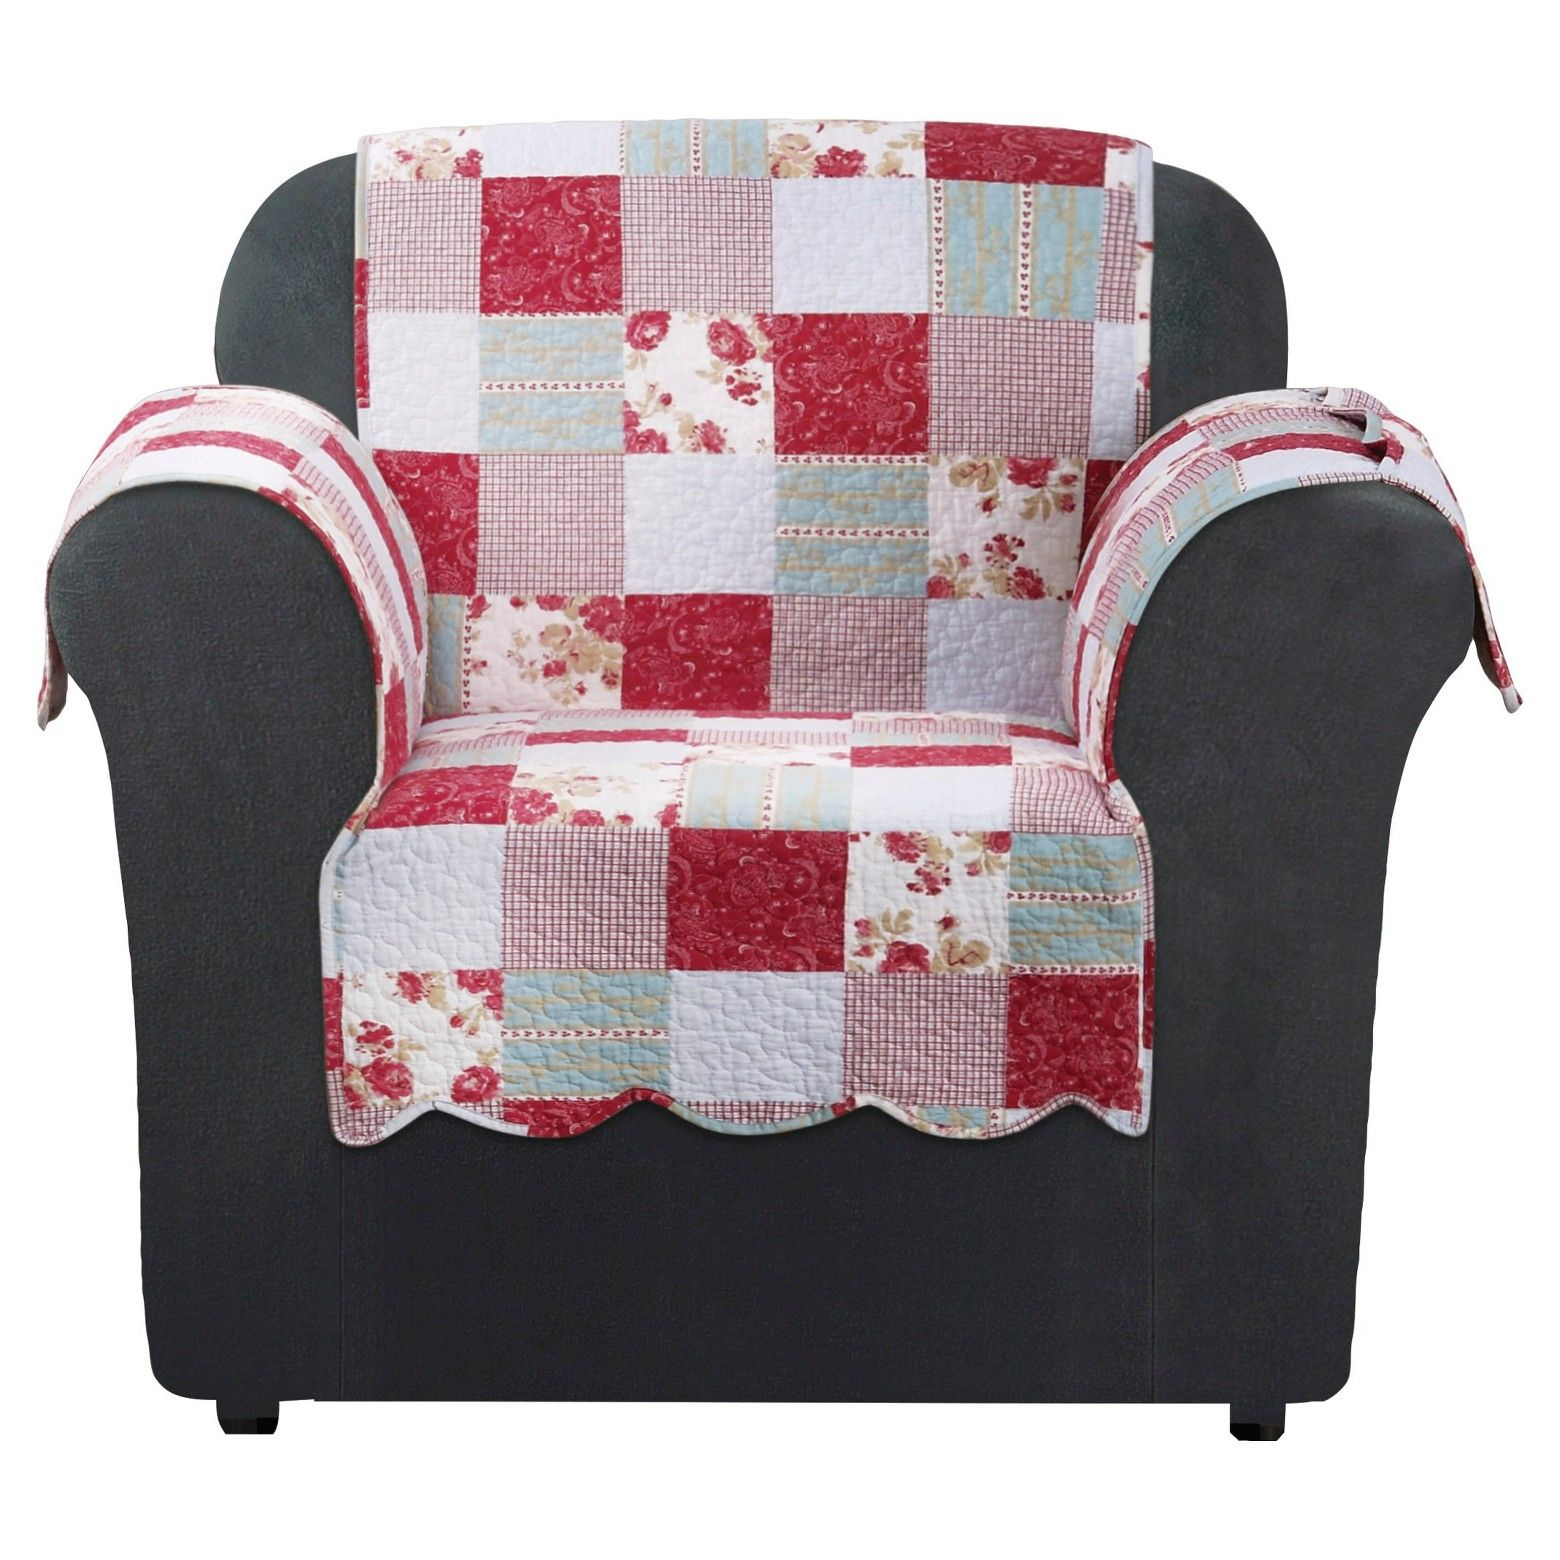 Quilted Lounge Chair Covers Pink Heirloom Cottage Patchwork Chair Furniture Cover Sure